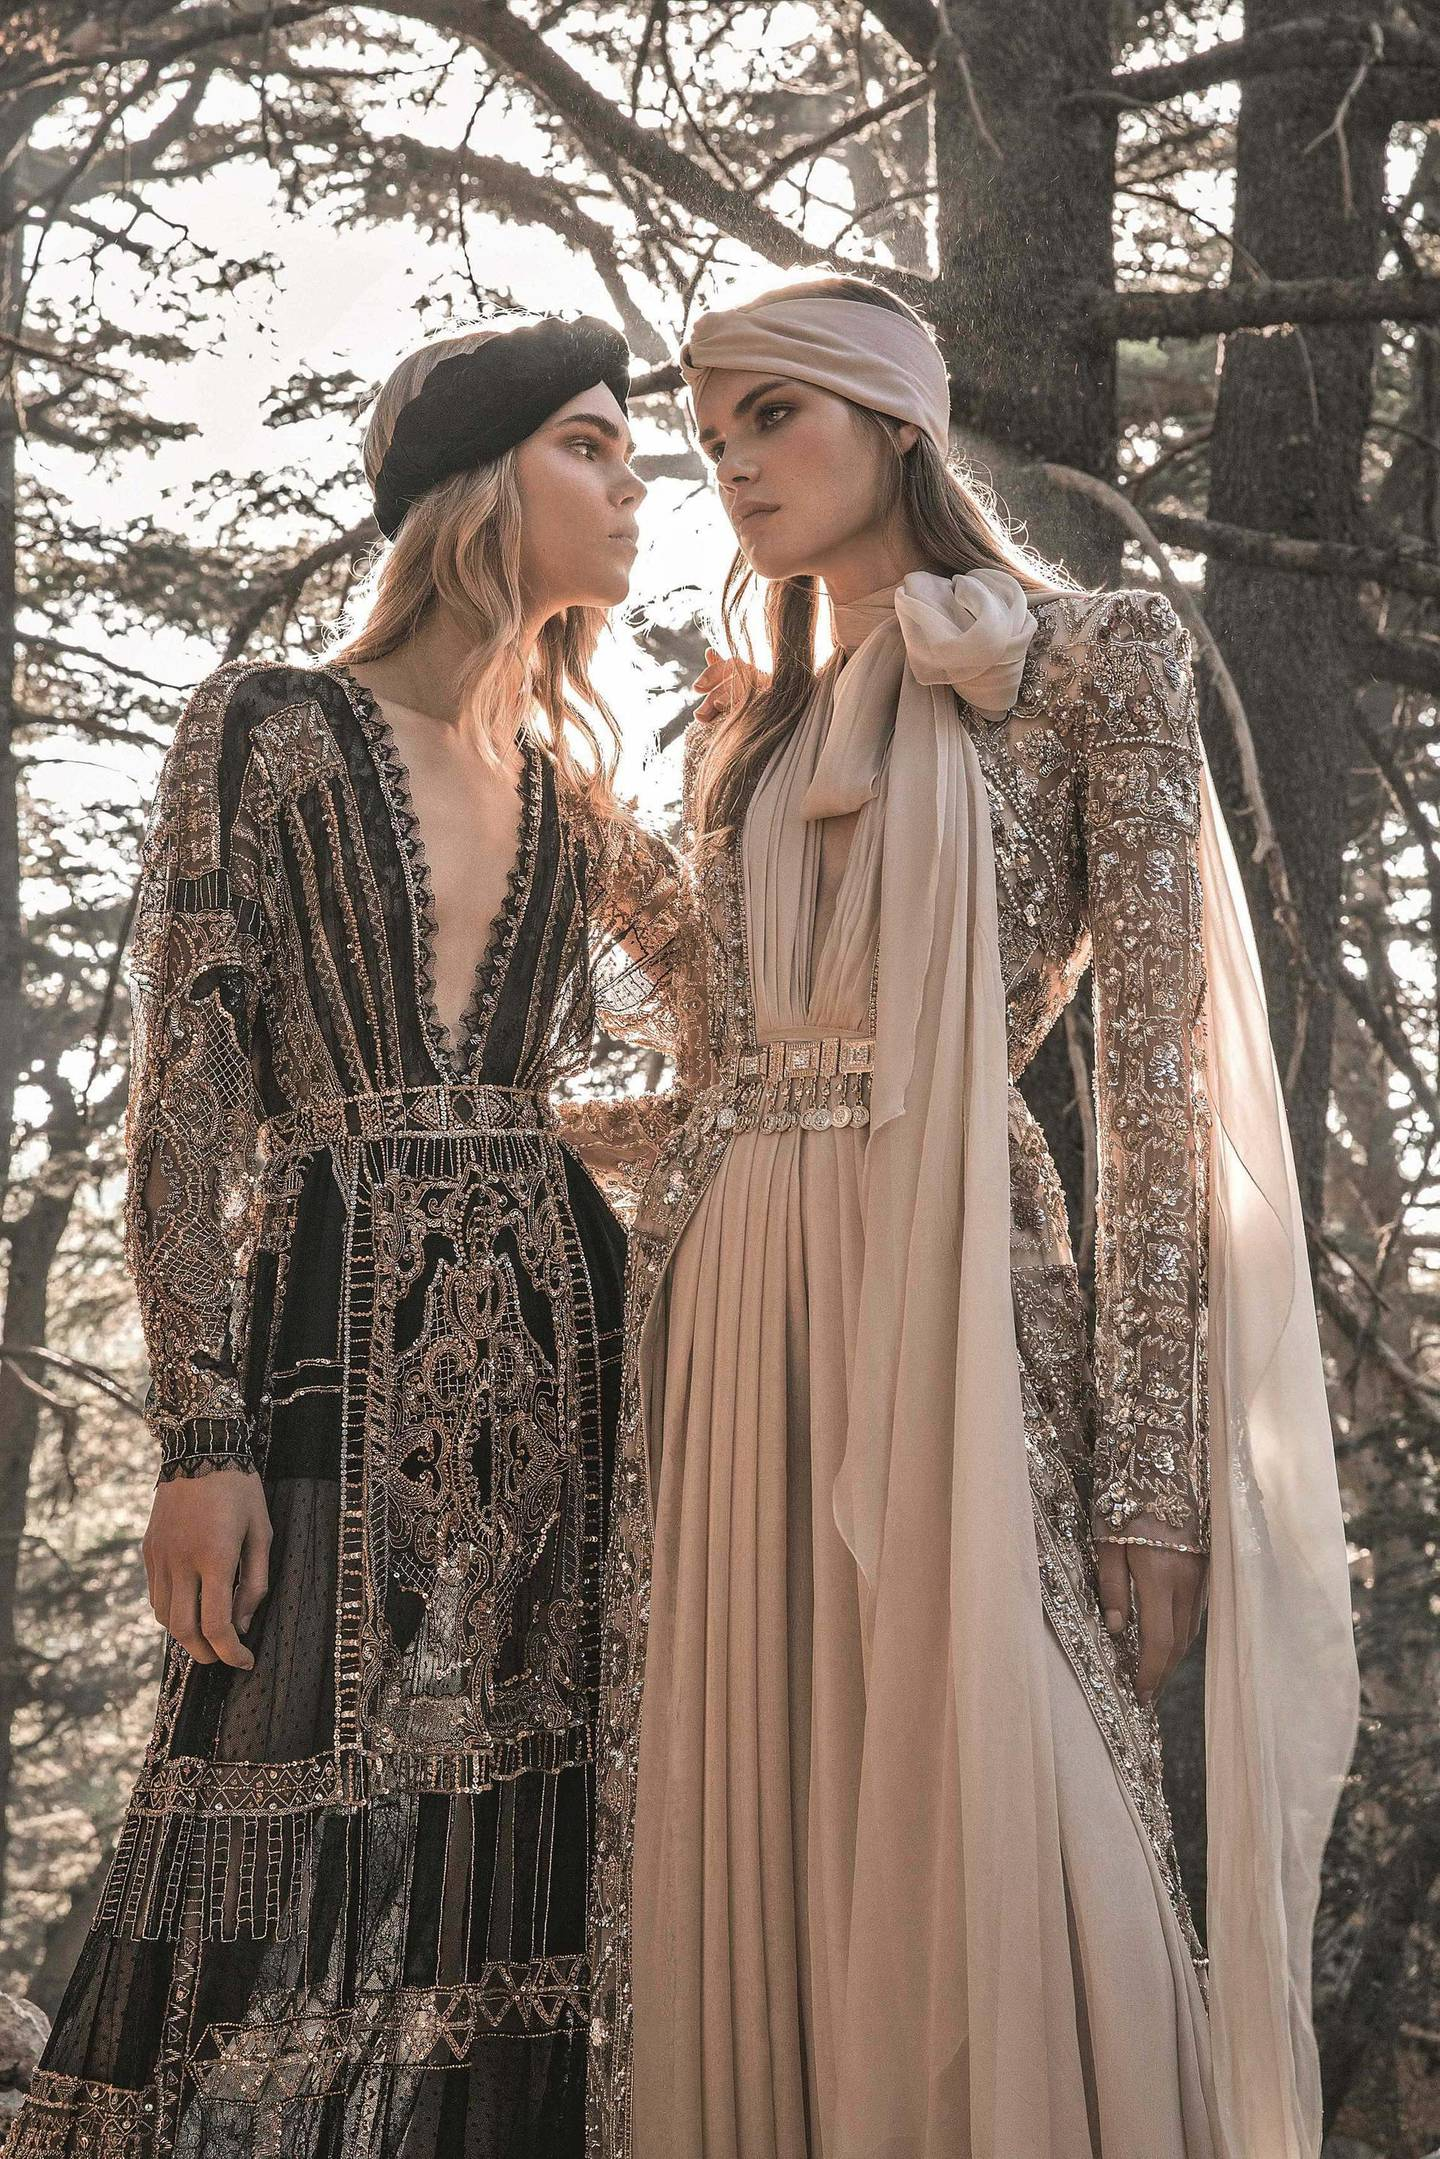 AW19 haute couture collection at Barouk Natural Reserve. Photo by M Seif